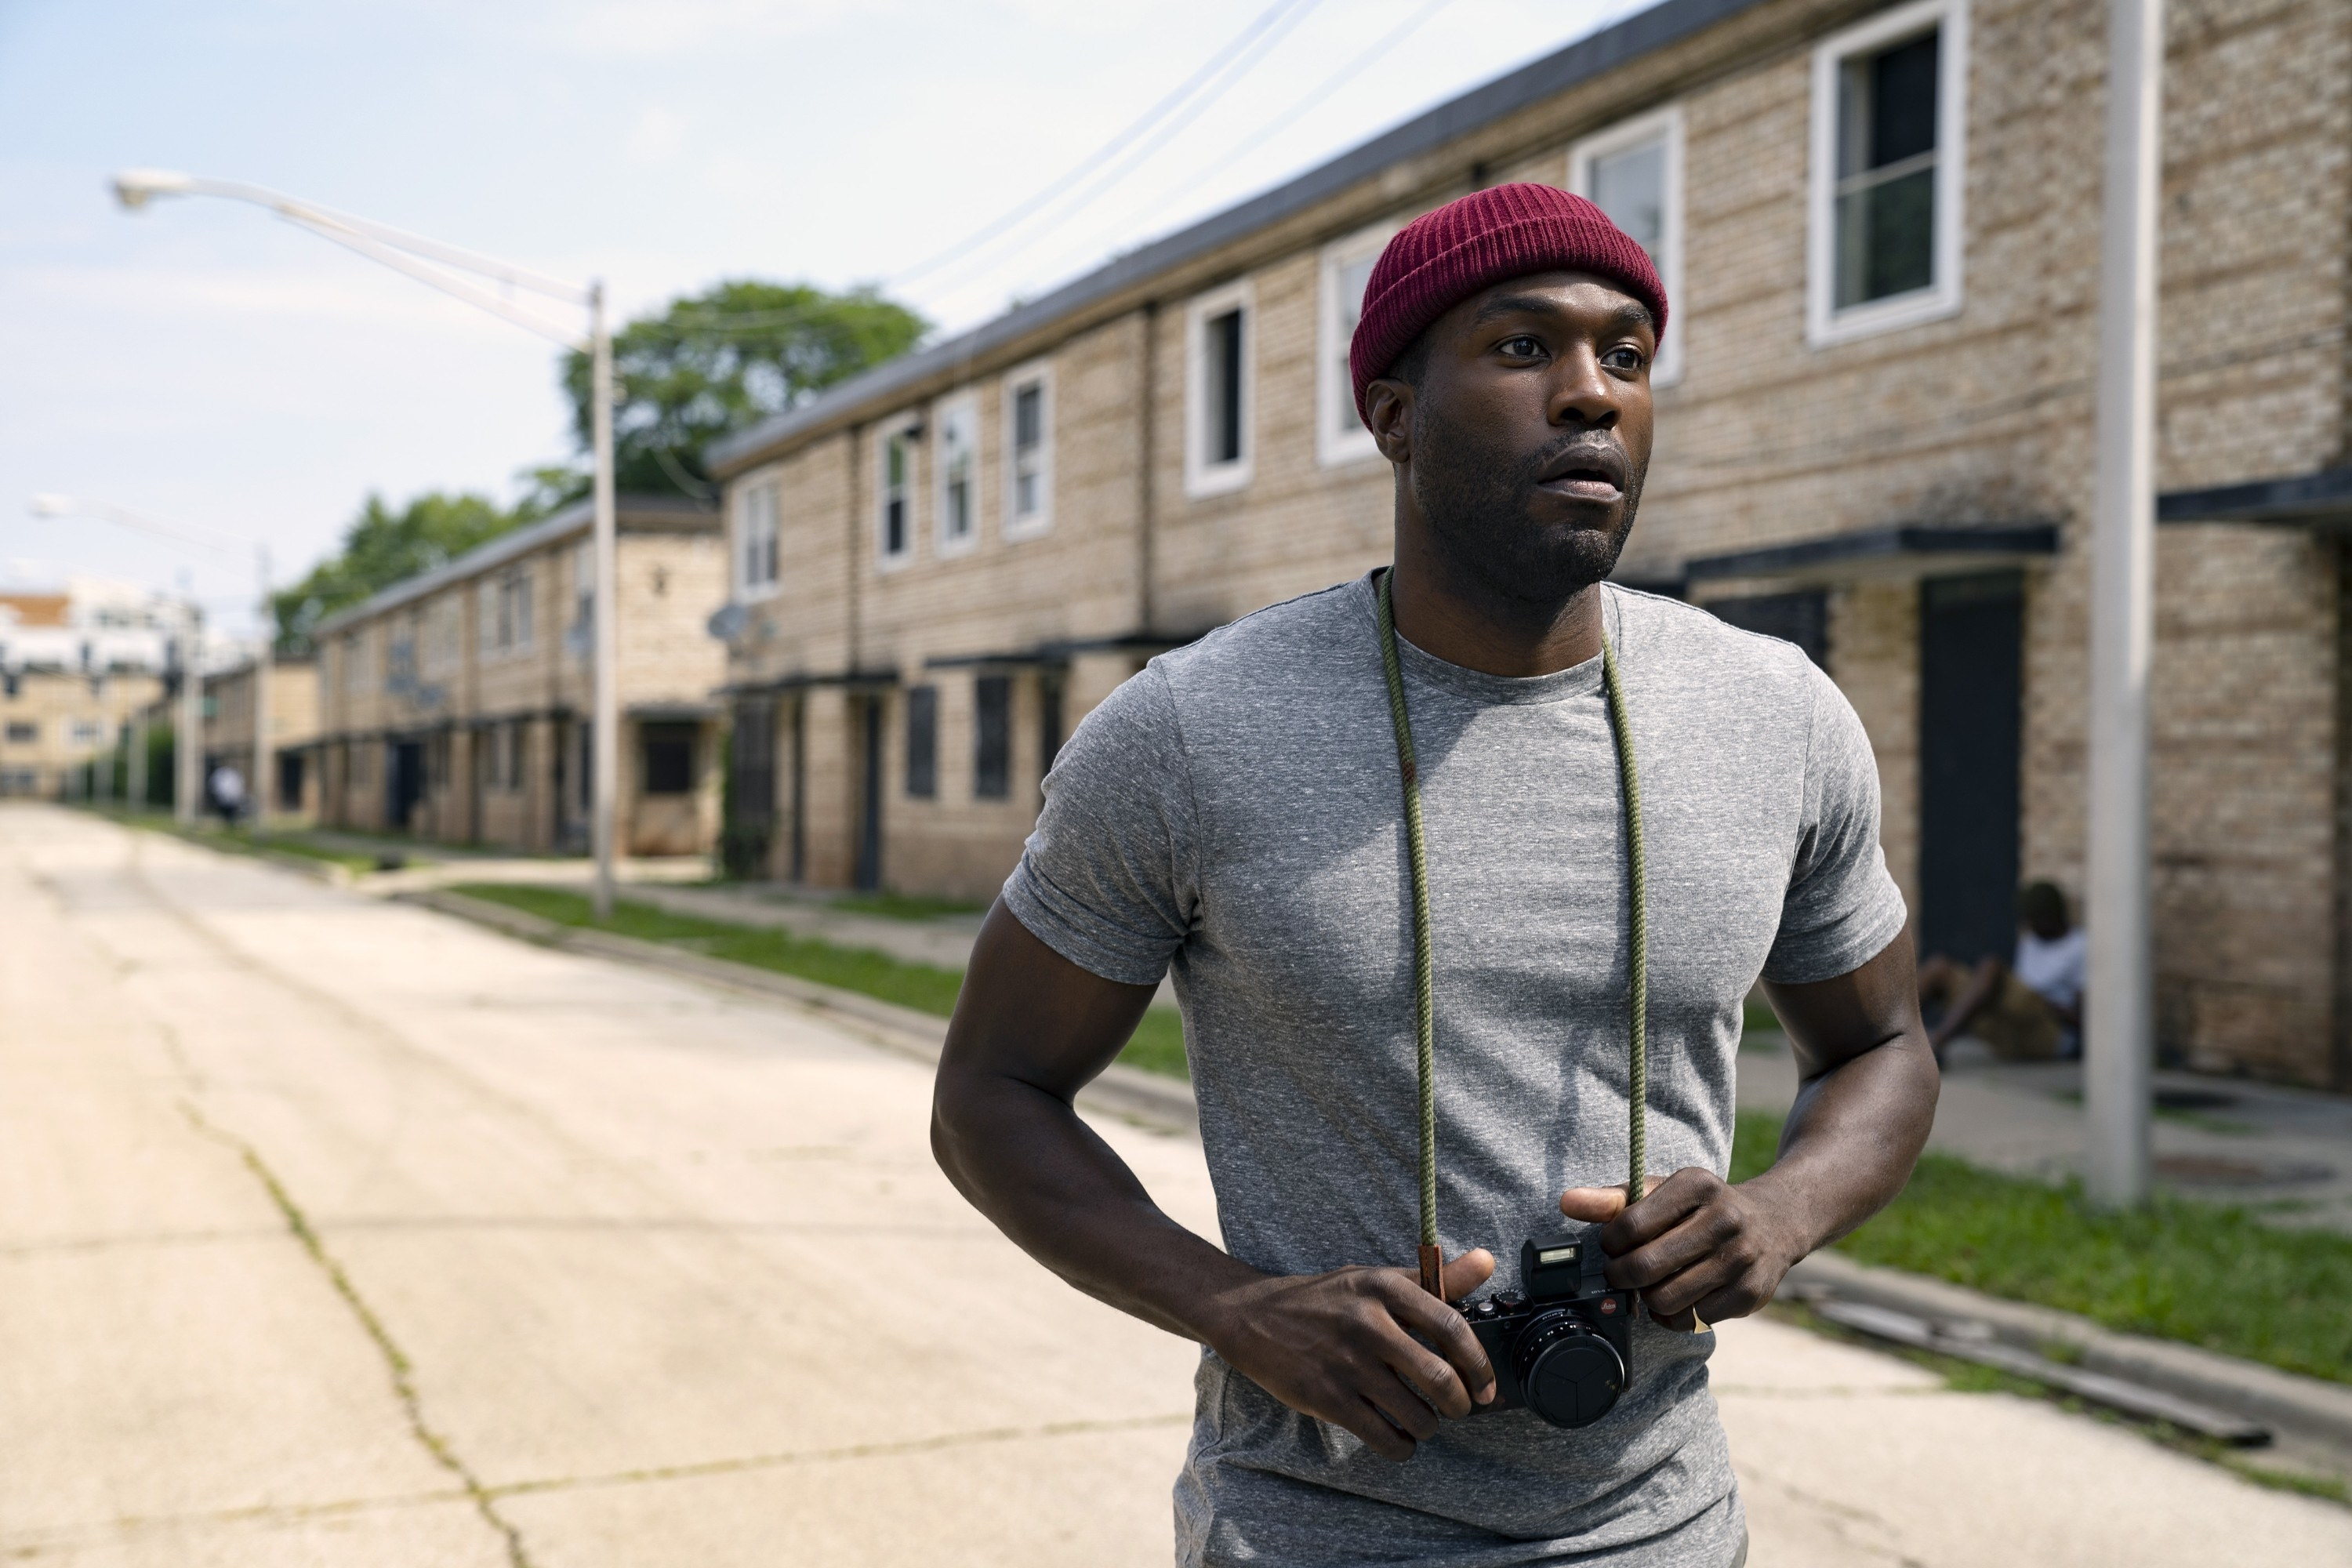 Anthony, walking through an abandoned neighborhood, wearing a camera around his neck